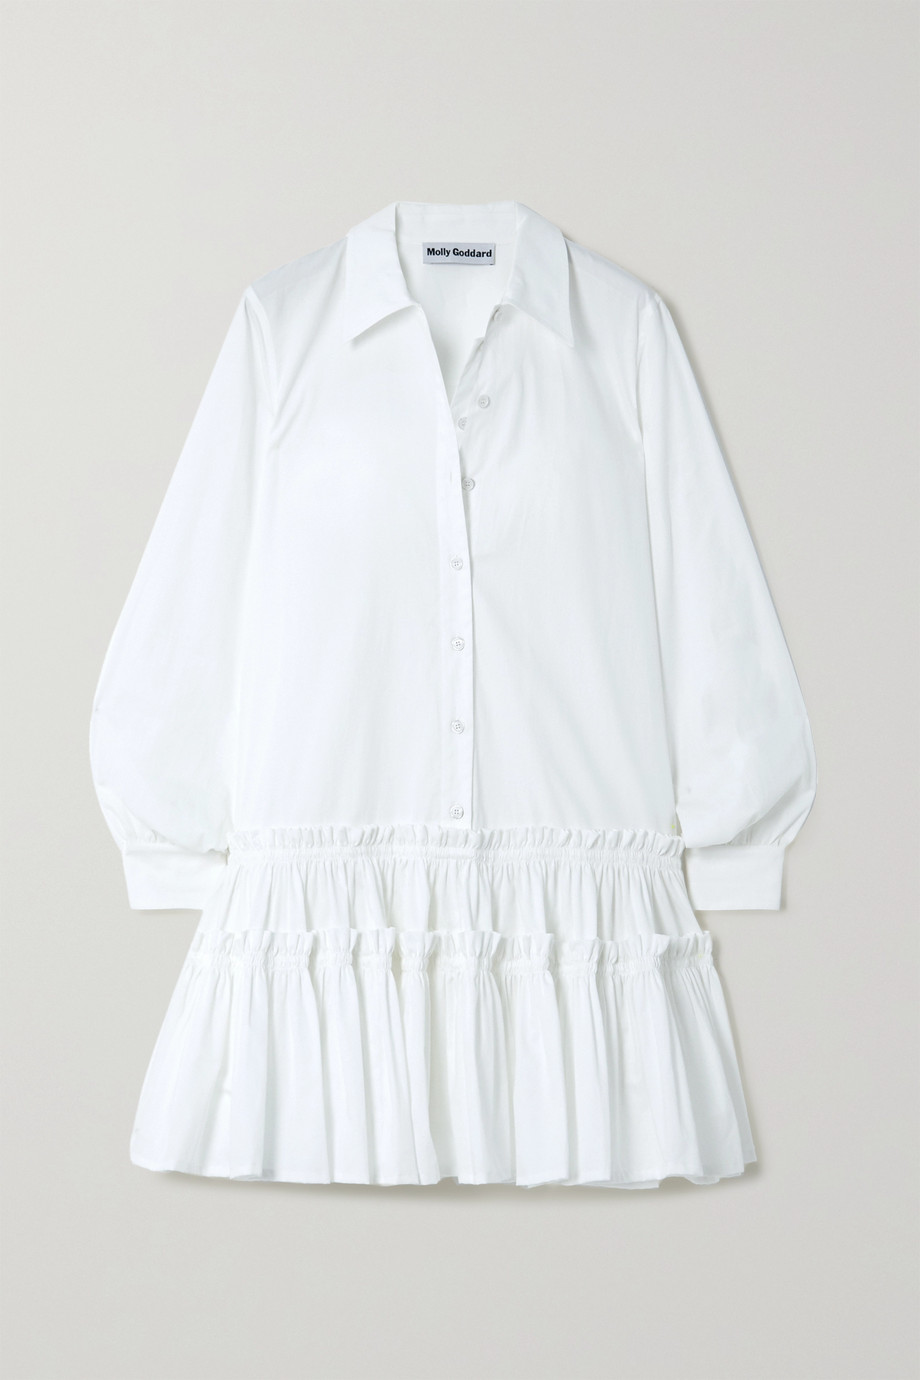 Molly Goddard Ithaca ruffled cotton-gabardine shirt dress